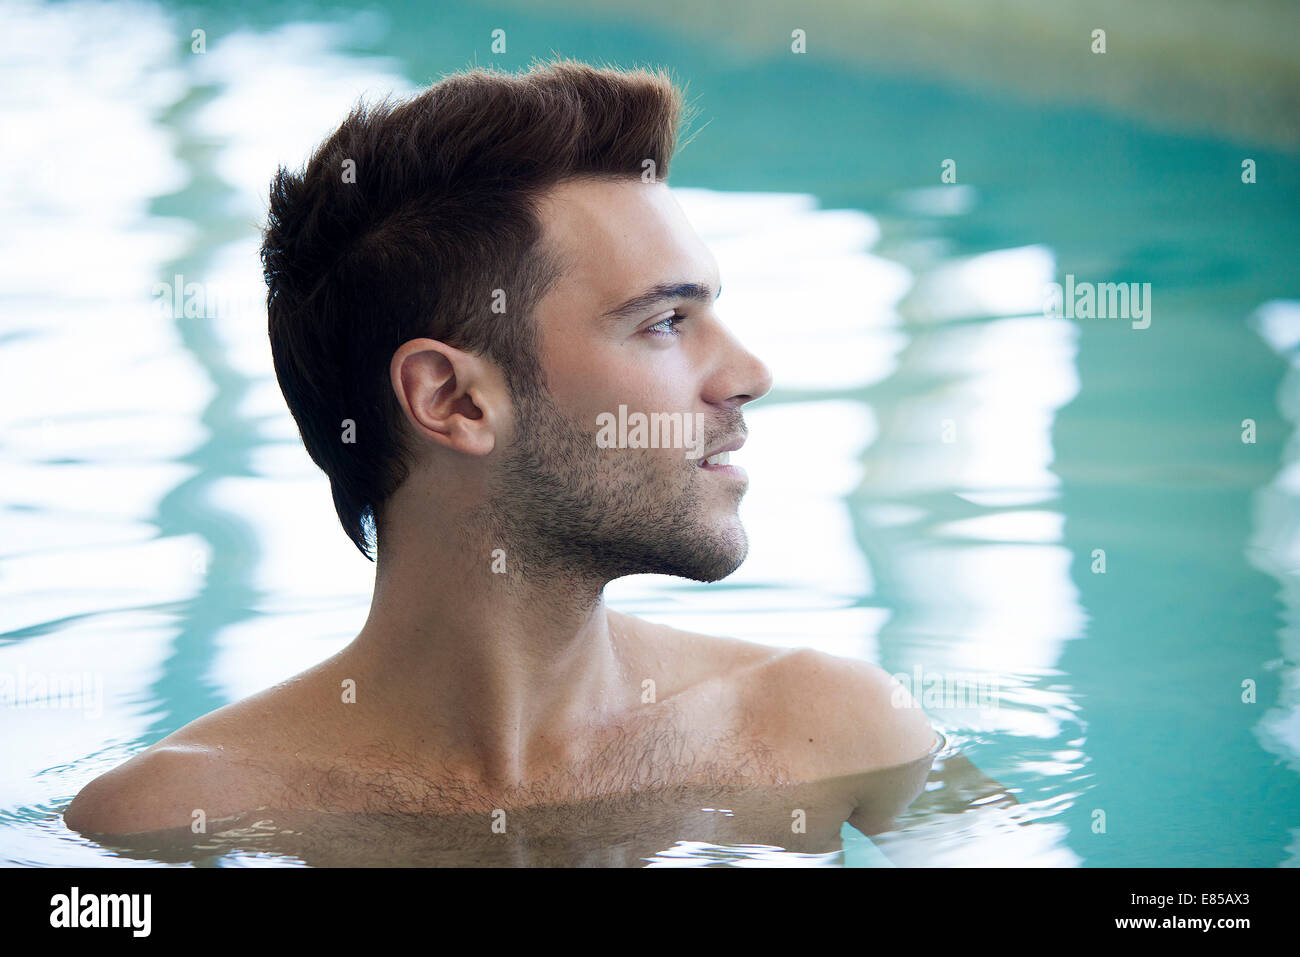 Young man relaxing in pool - Stock Image